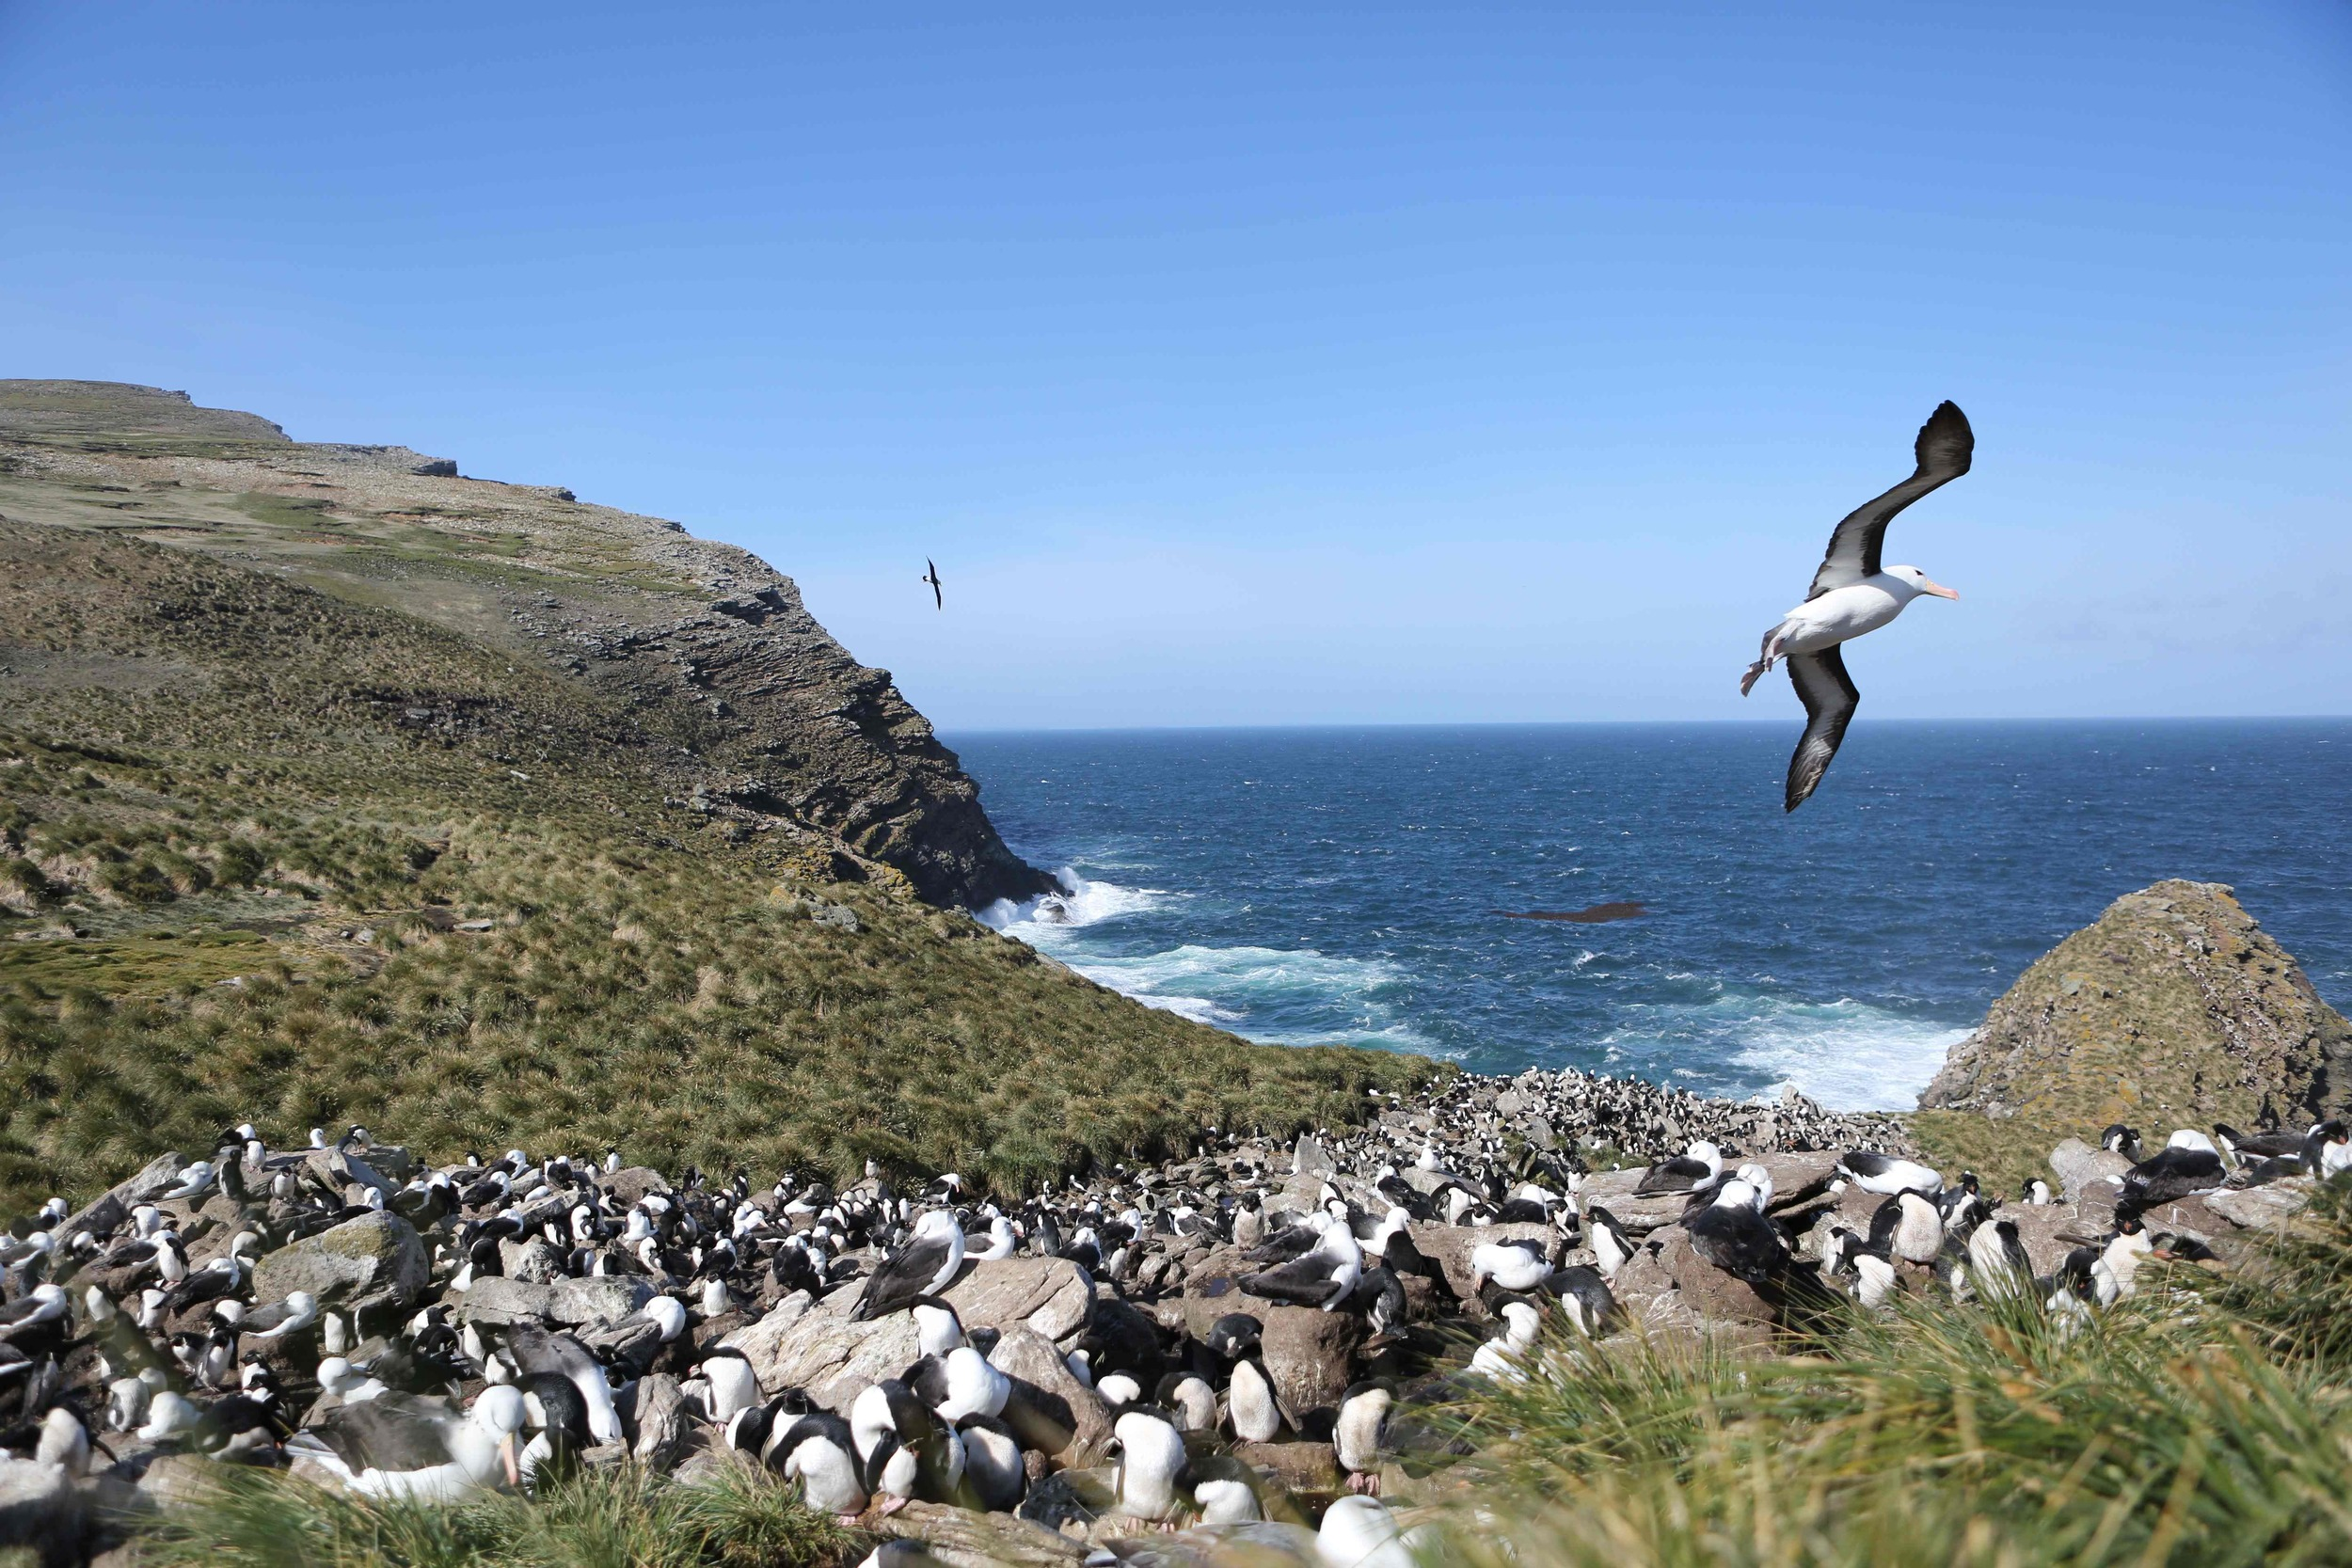 Black-browed albatrosses and rockhopper penguins shared a nesting ground on West Point Island, our first destination in the Falklands. (Scroll down for earlier posts on how we ended up on this Antarctic expedition and what we had already seen.)